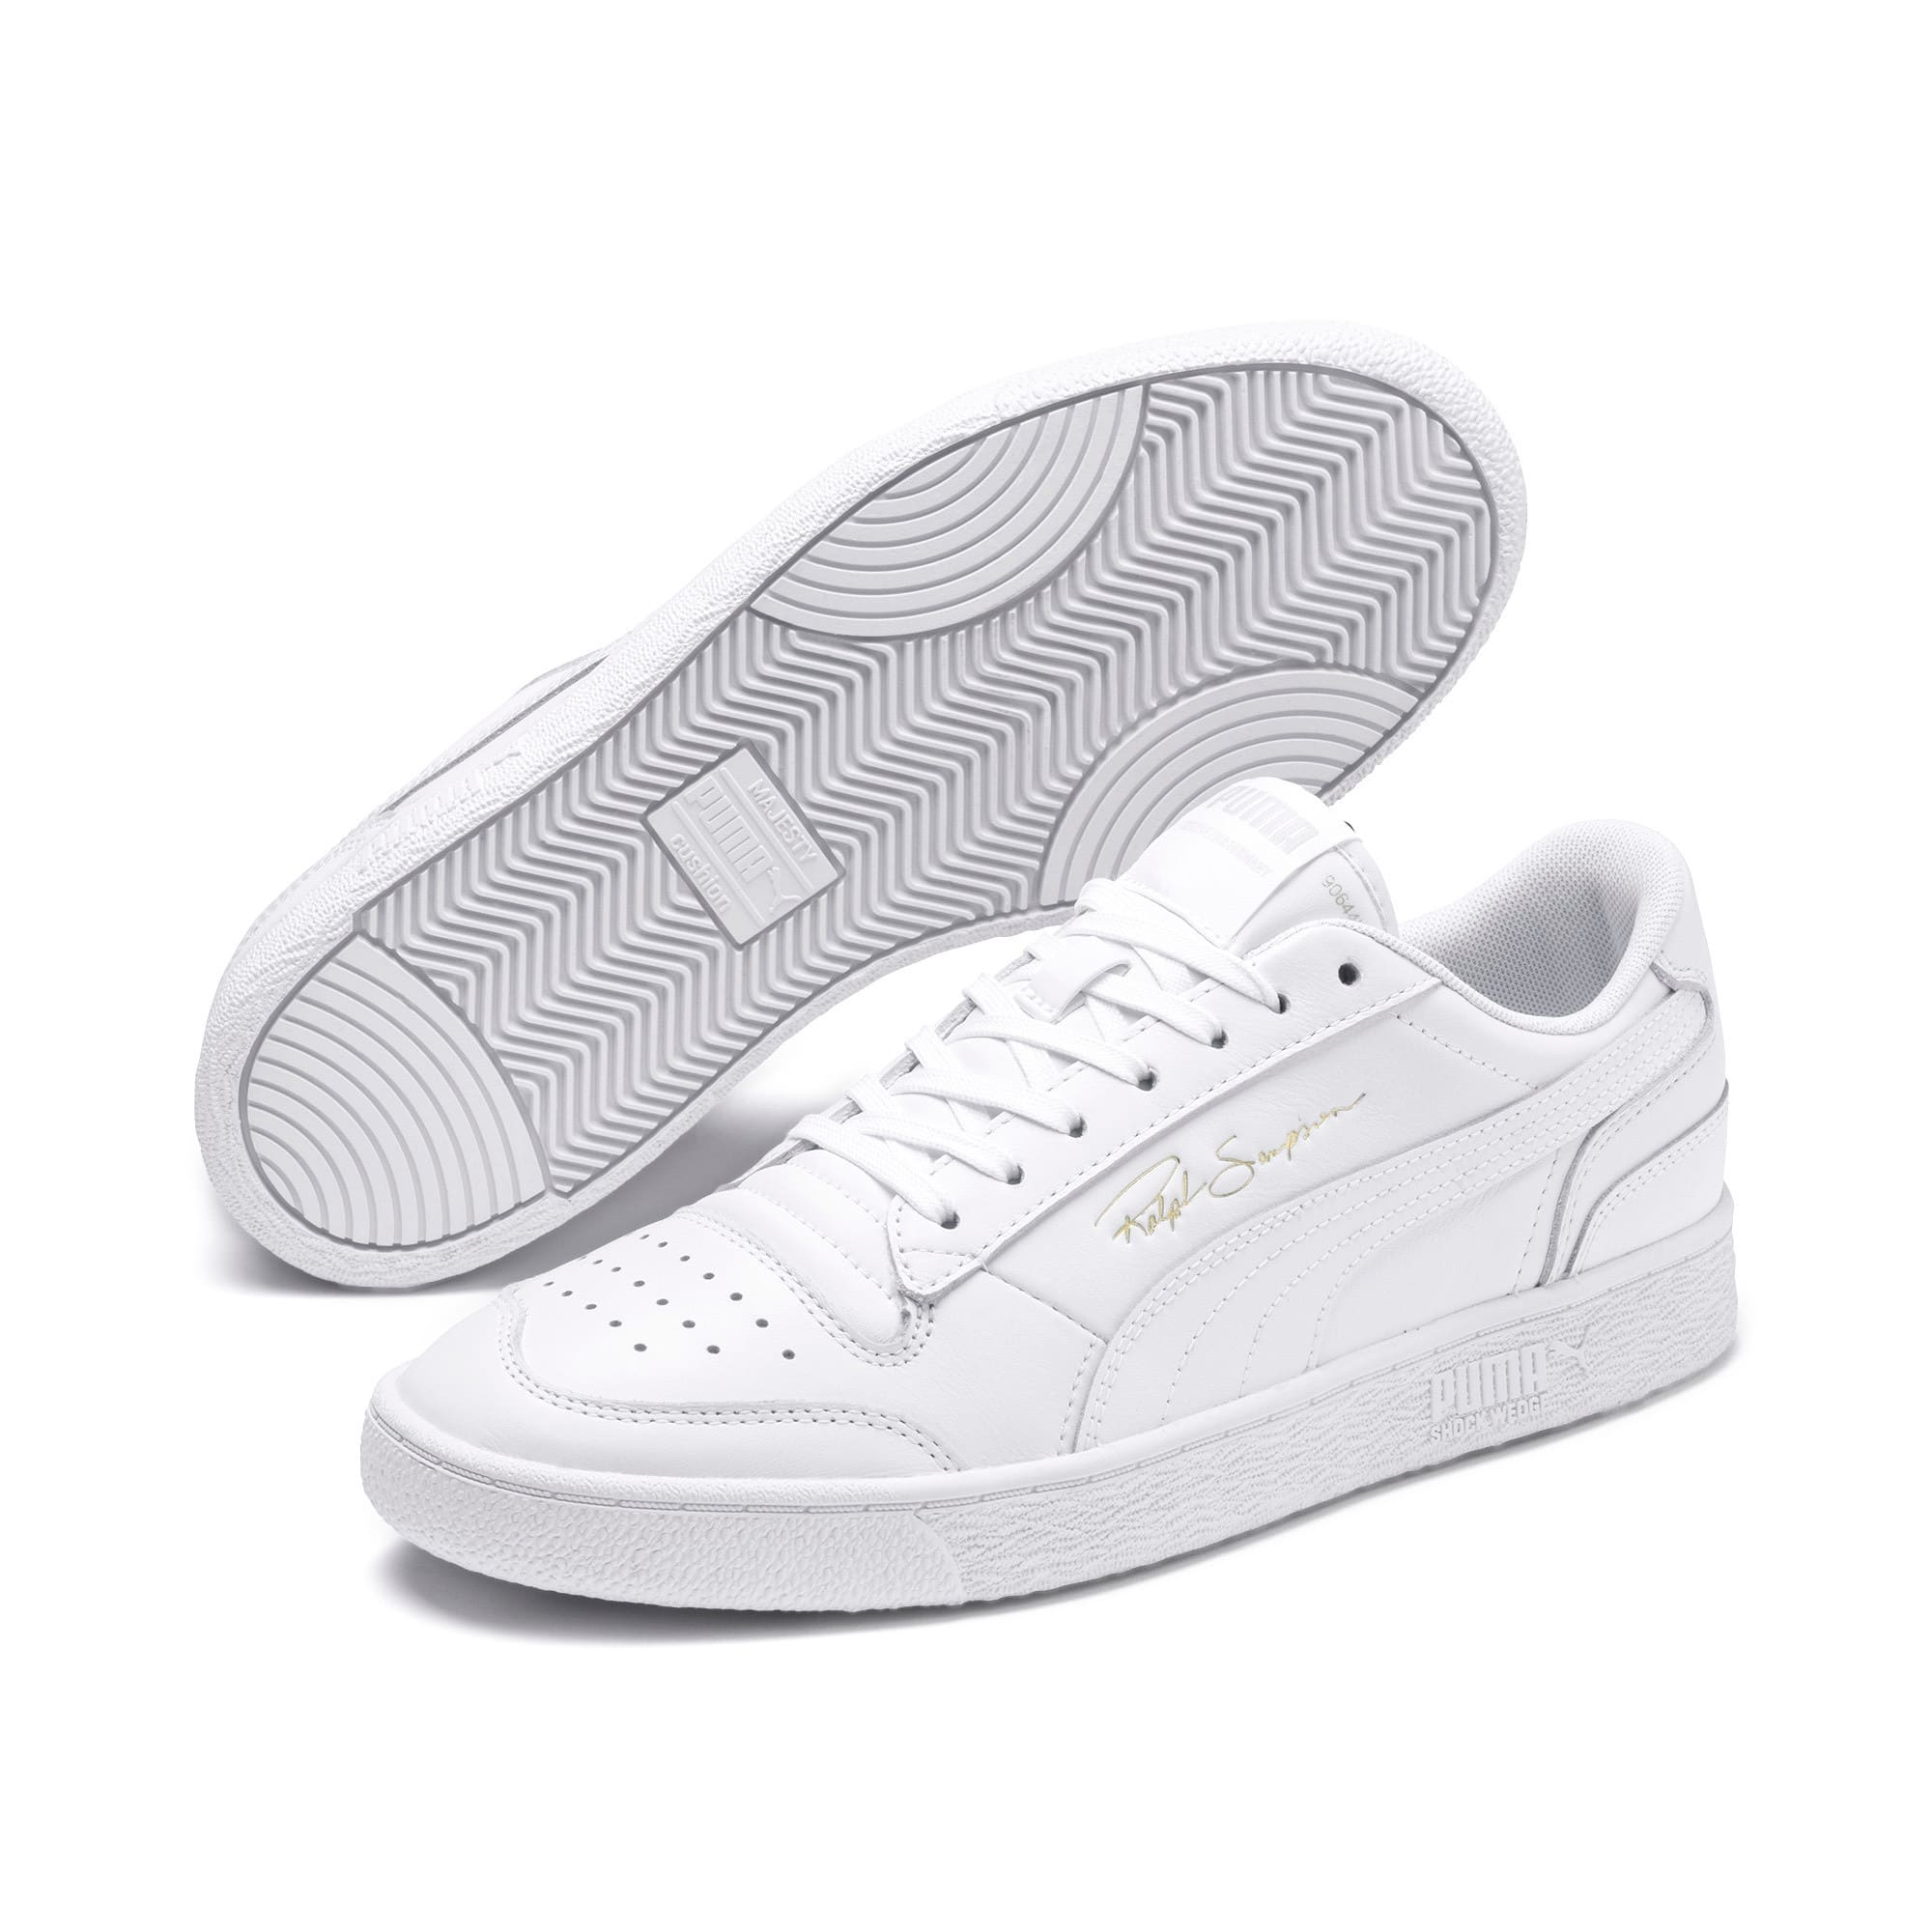 Thumbnail 3 of Ralph Sampson Lo Sneakers, Puma Wht-Puma Wht-Puma Wht, medium